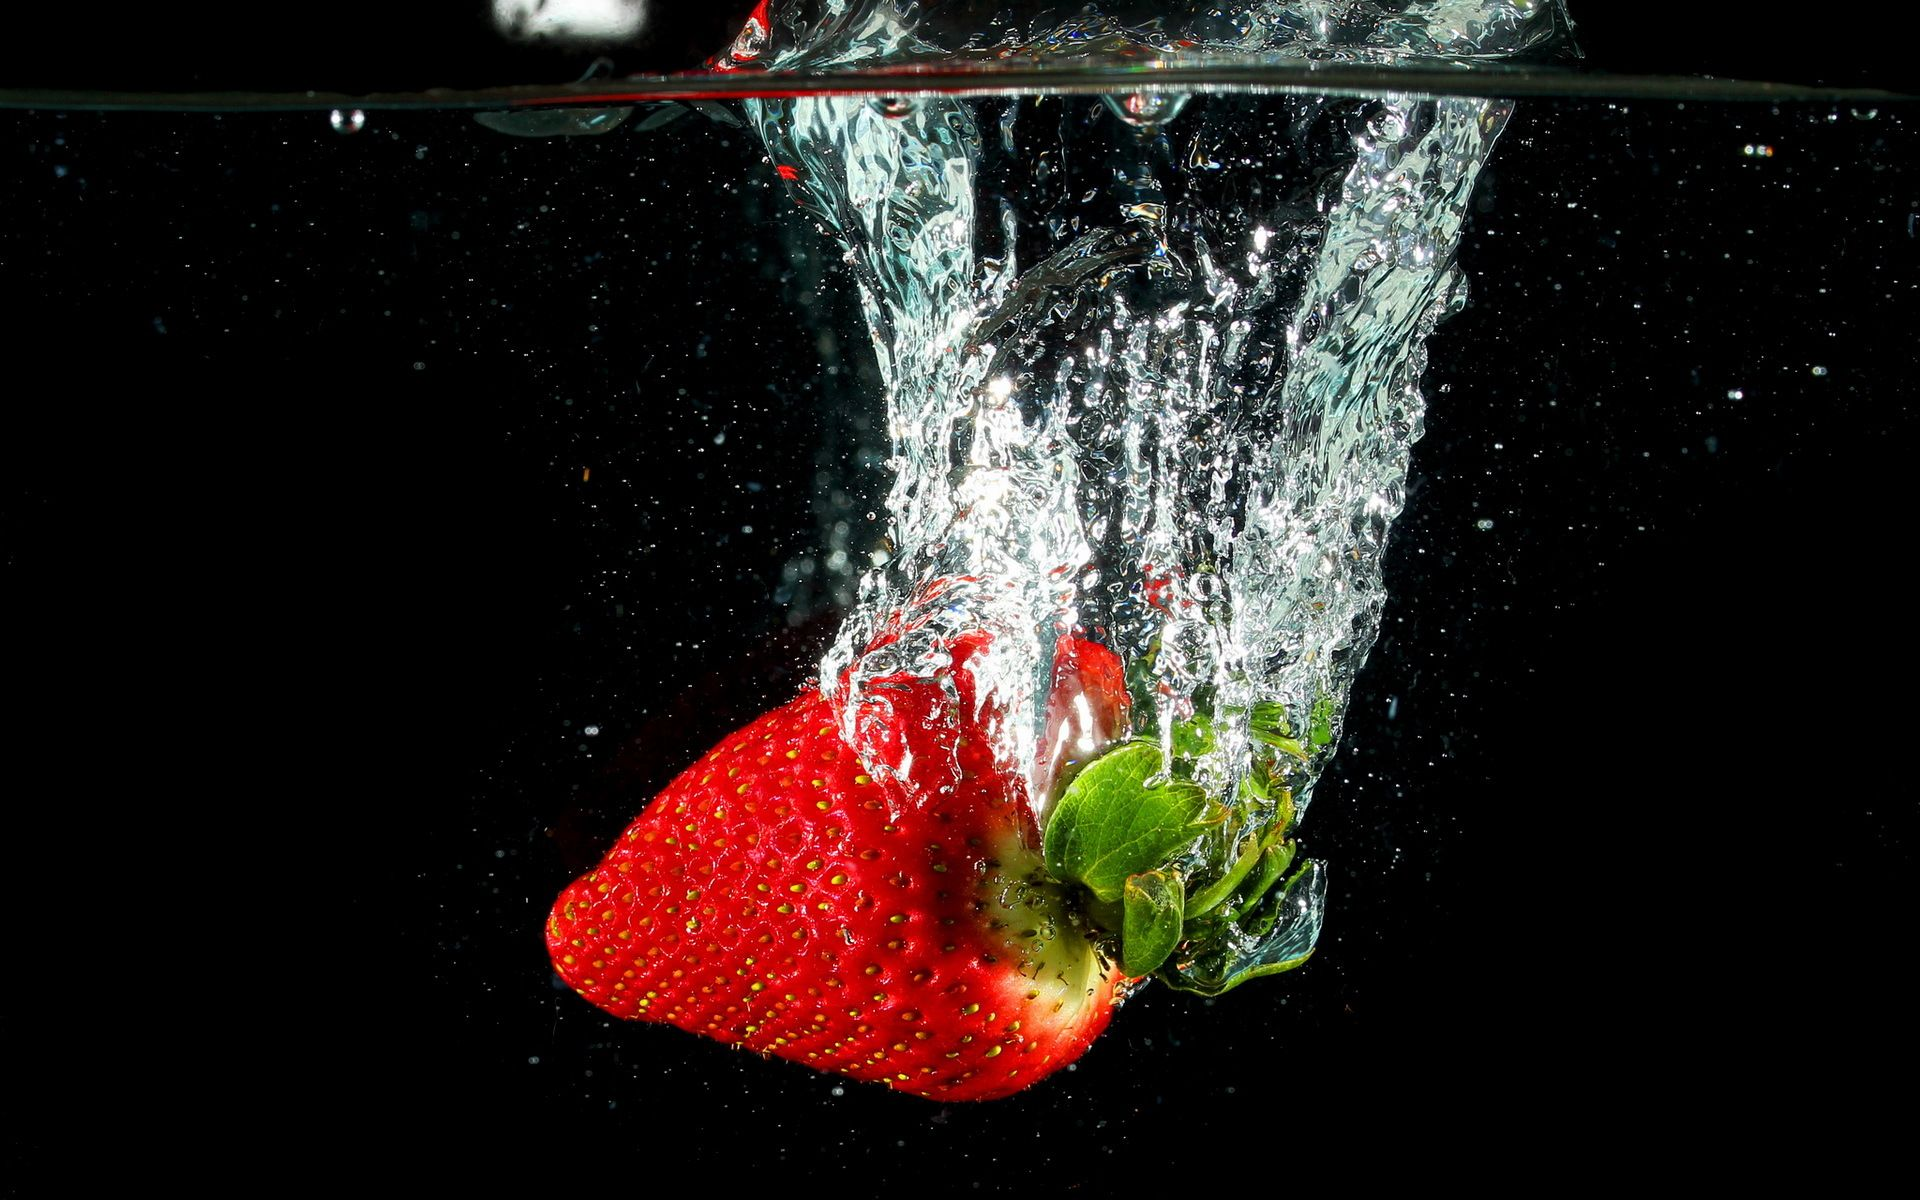 Free Download Strawberry Hd Wallpaper For Android Fruit Wallpaper Strawberry Beautiful Fruits